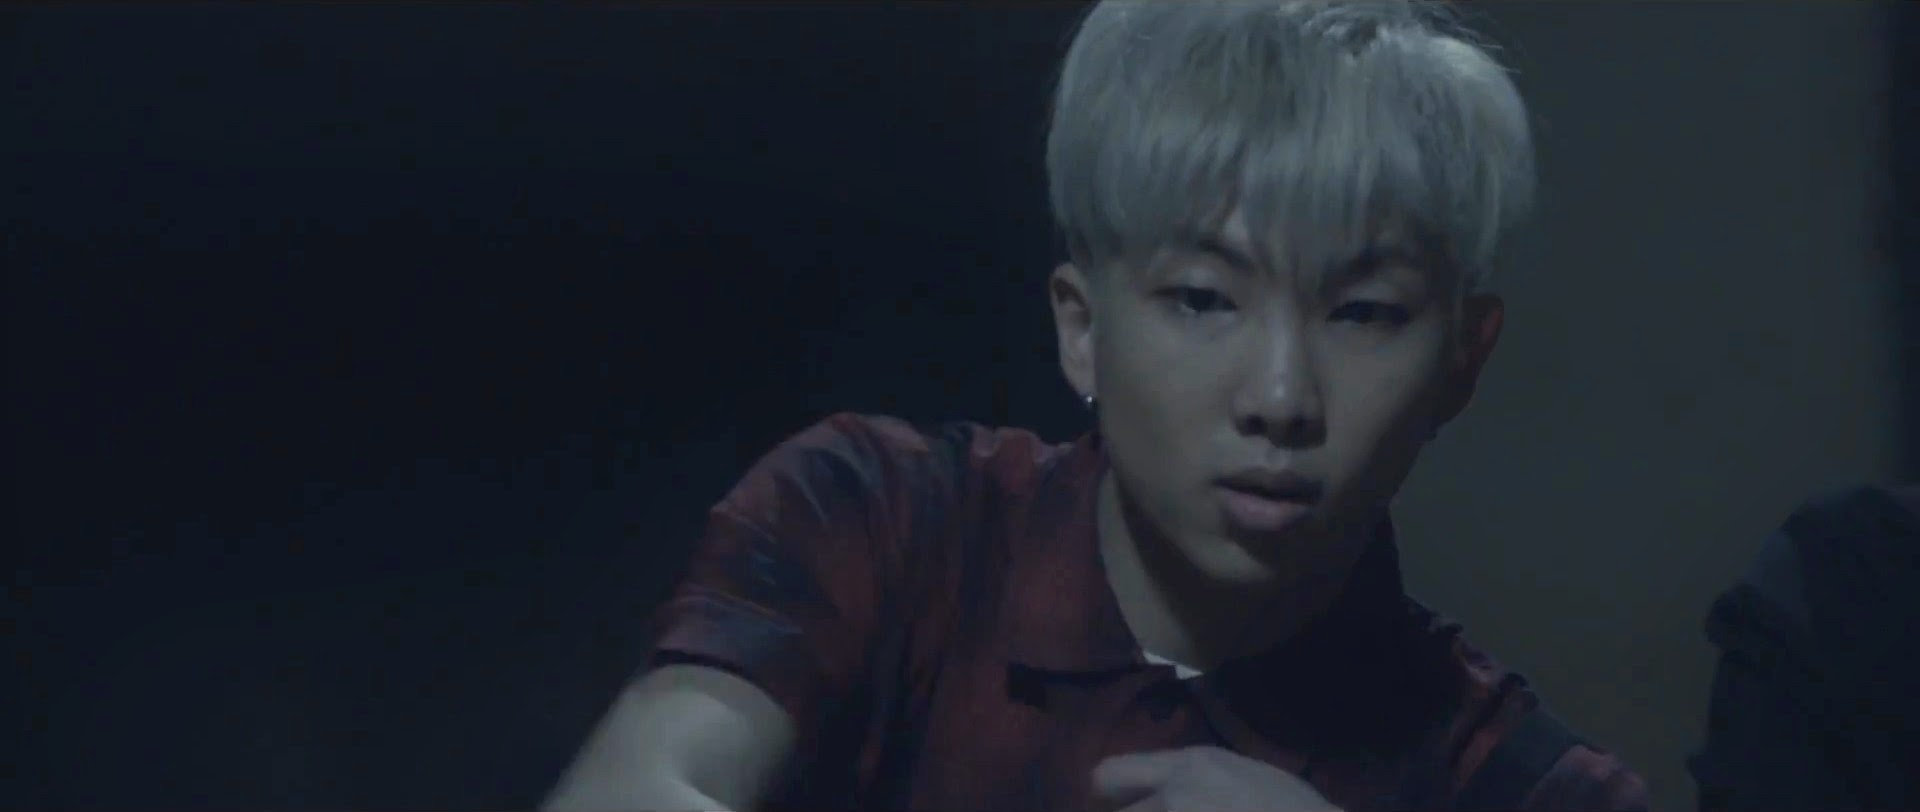 Bangtan's Rap Monster in I Need You MV